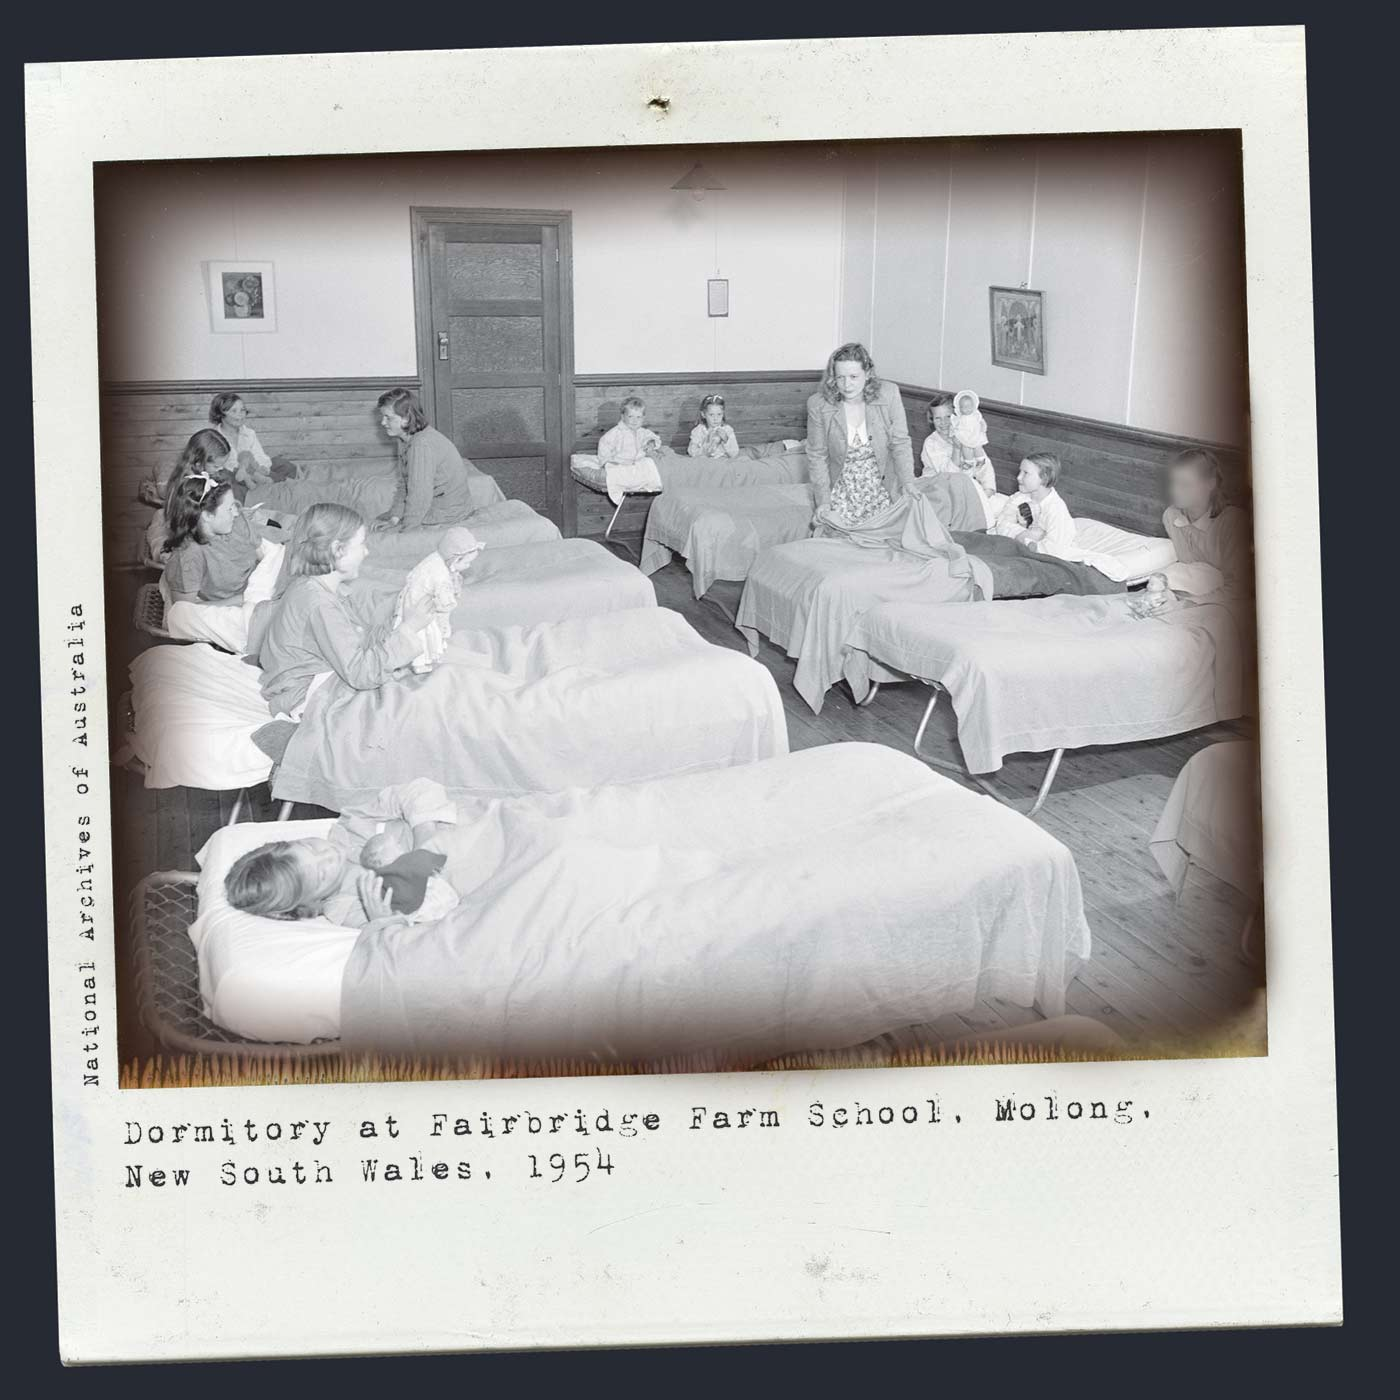 Polaroid photograph showing a group of young girls sitting in two rows of single beds, each holding a doll. An older woman and girl help the younger girls prepare for bed. Typed text below reads 'Dormitory at Fairbridge Farm School, Molong, New South Wales, 1954. National Archives of Australia'. - click to view larger image